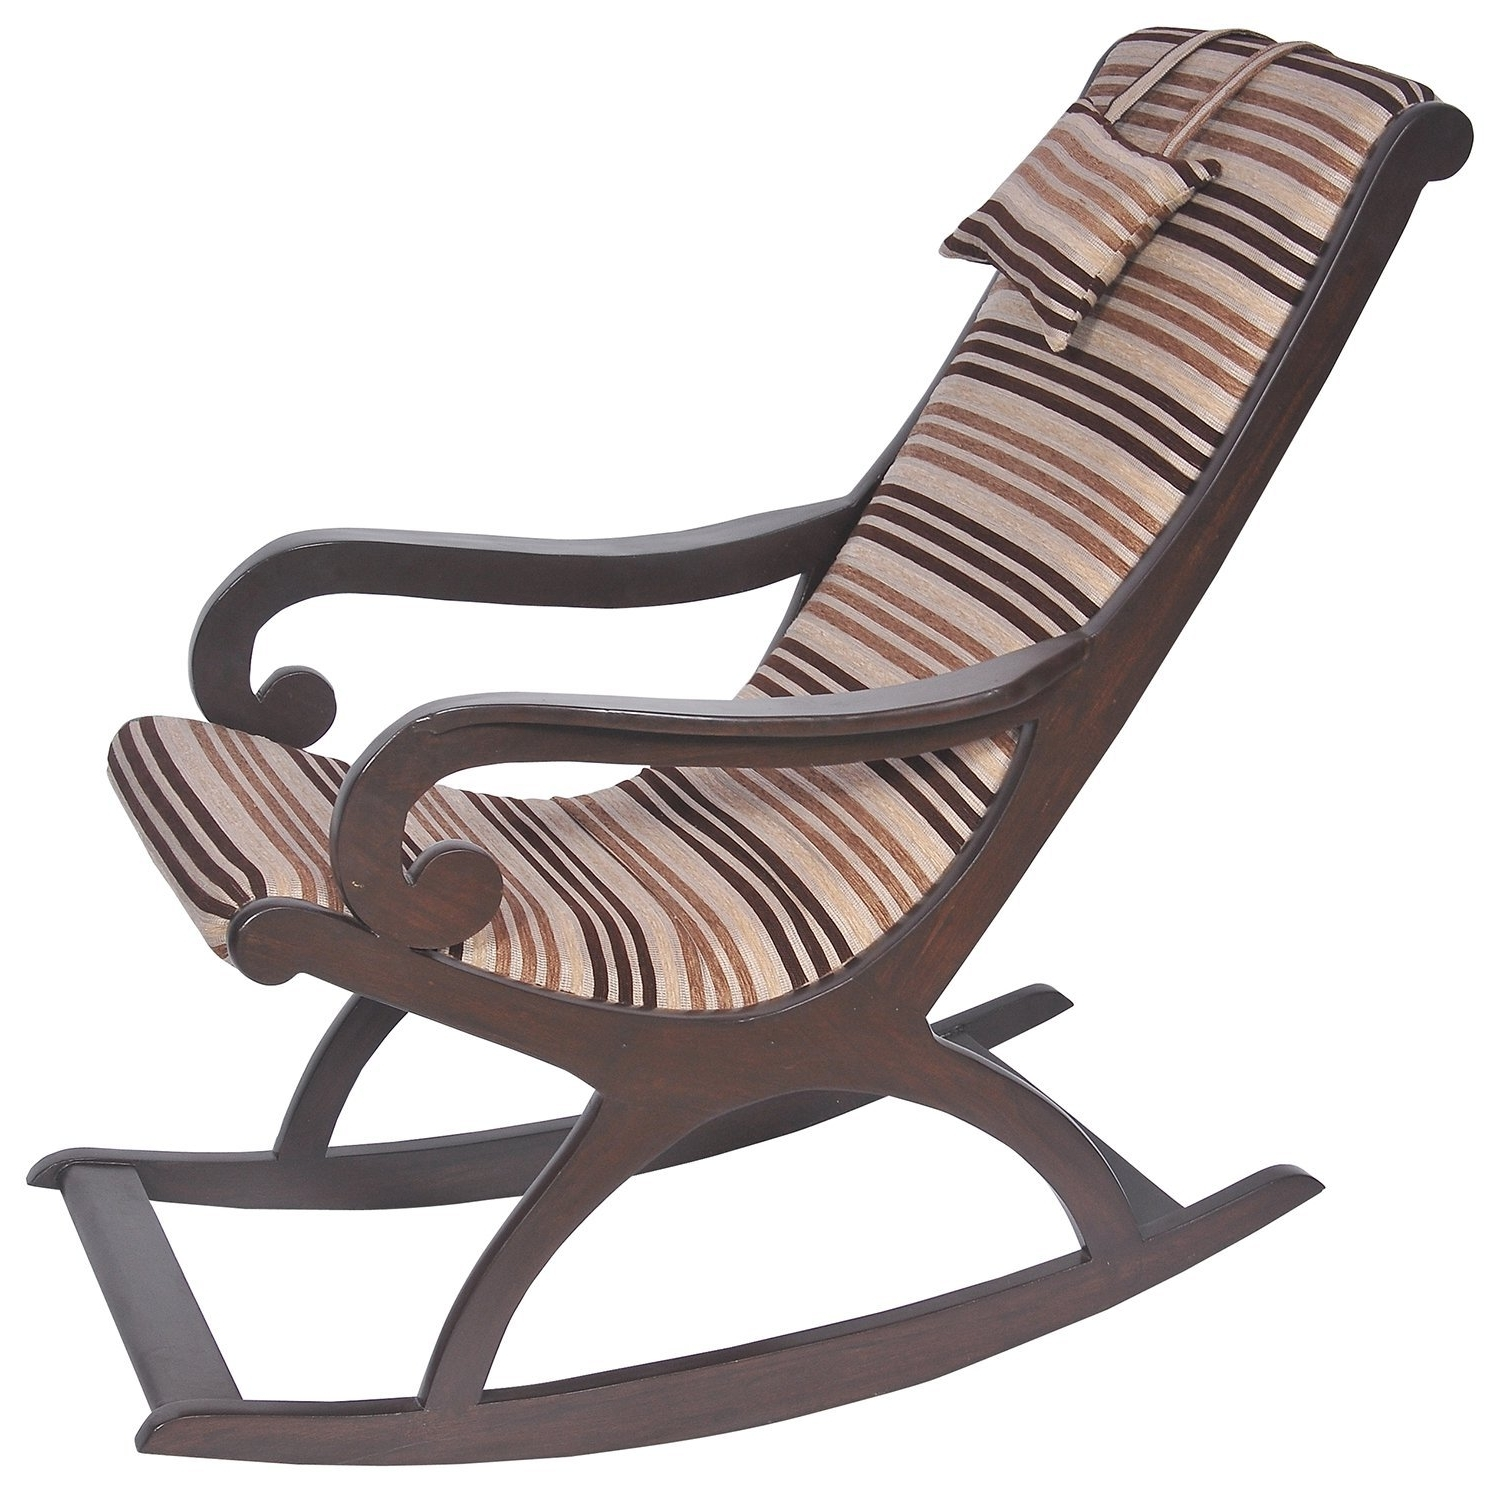 Kids Wooden Rocking Chair Small Adult Rocking Chair Indoor (View 2 of 15)